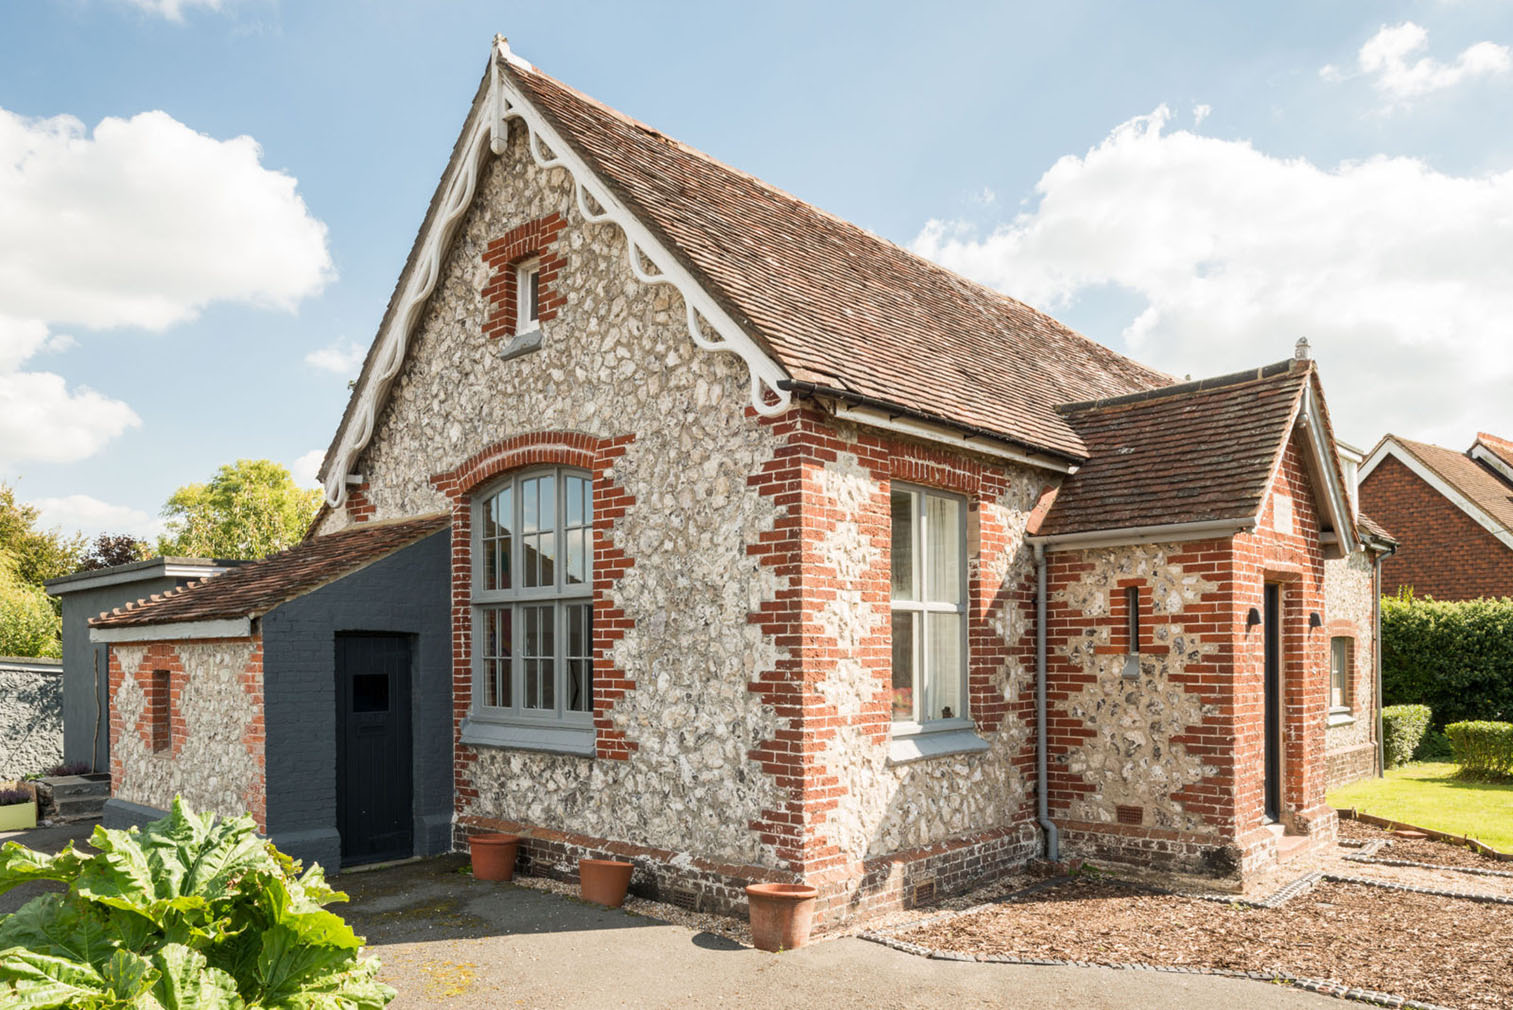 The Old School in Lewes, East Sussex via The Modern House